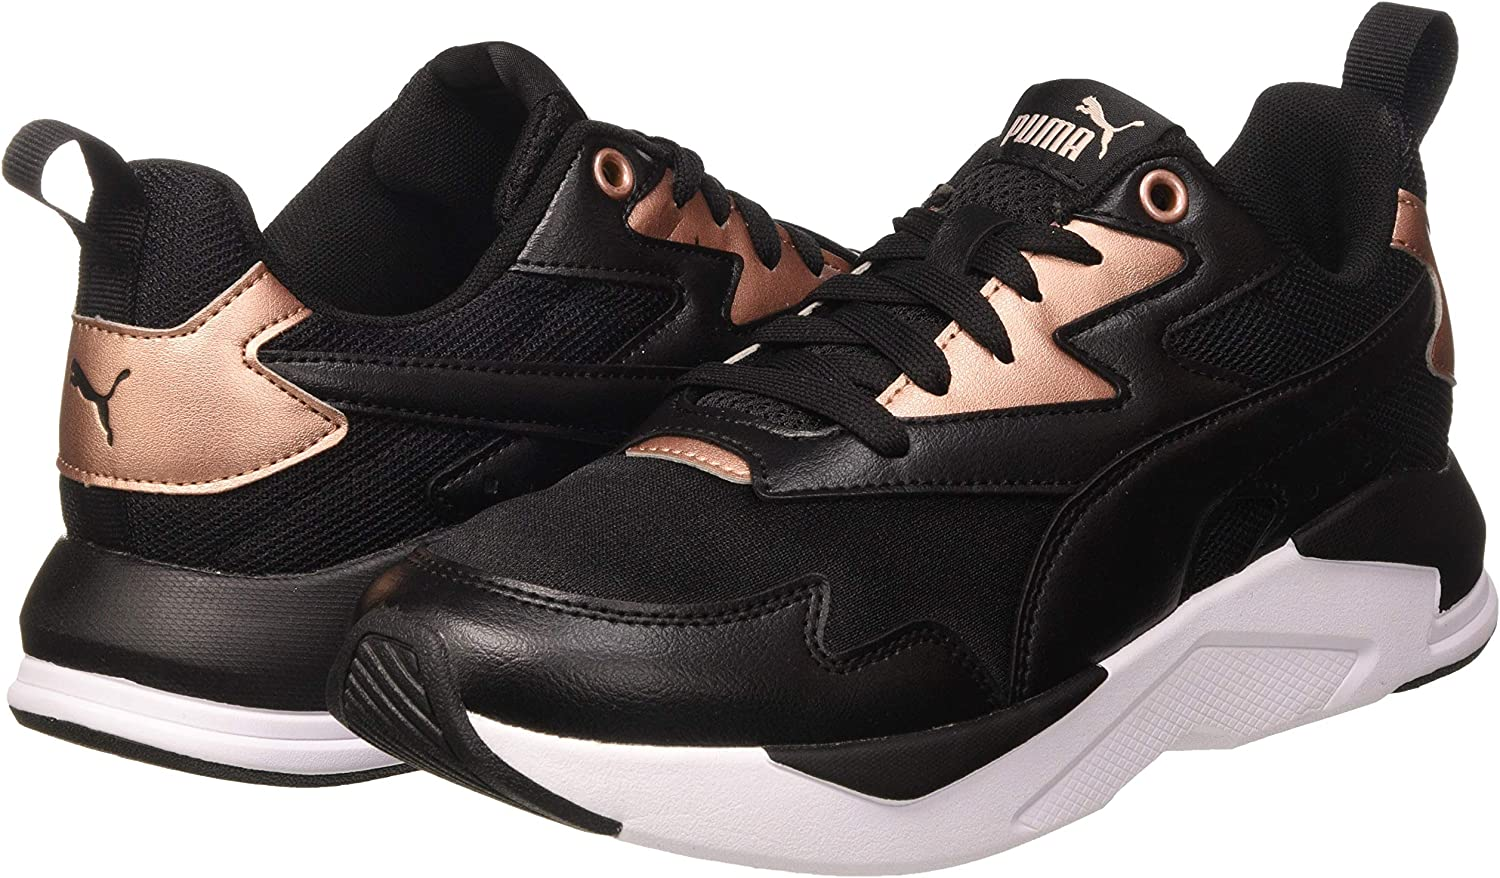 PUMA X Ray Lite Wmn's Metallic, Sneaker Donna: Amazon.it